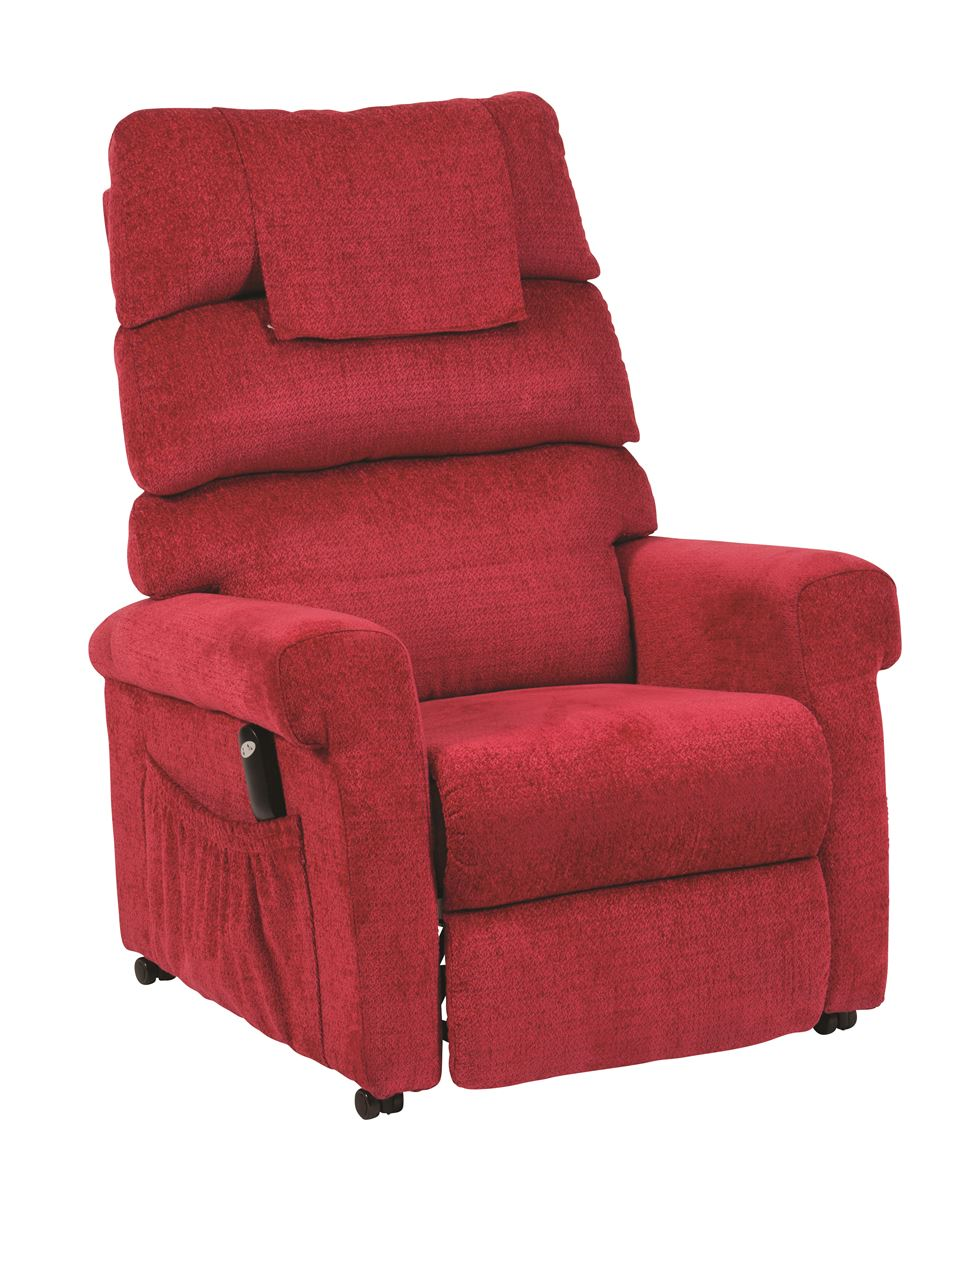 Picture for category Star Riser Recliner